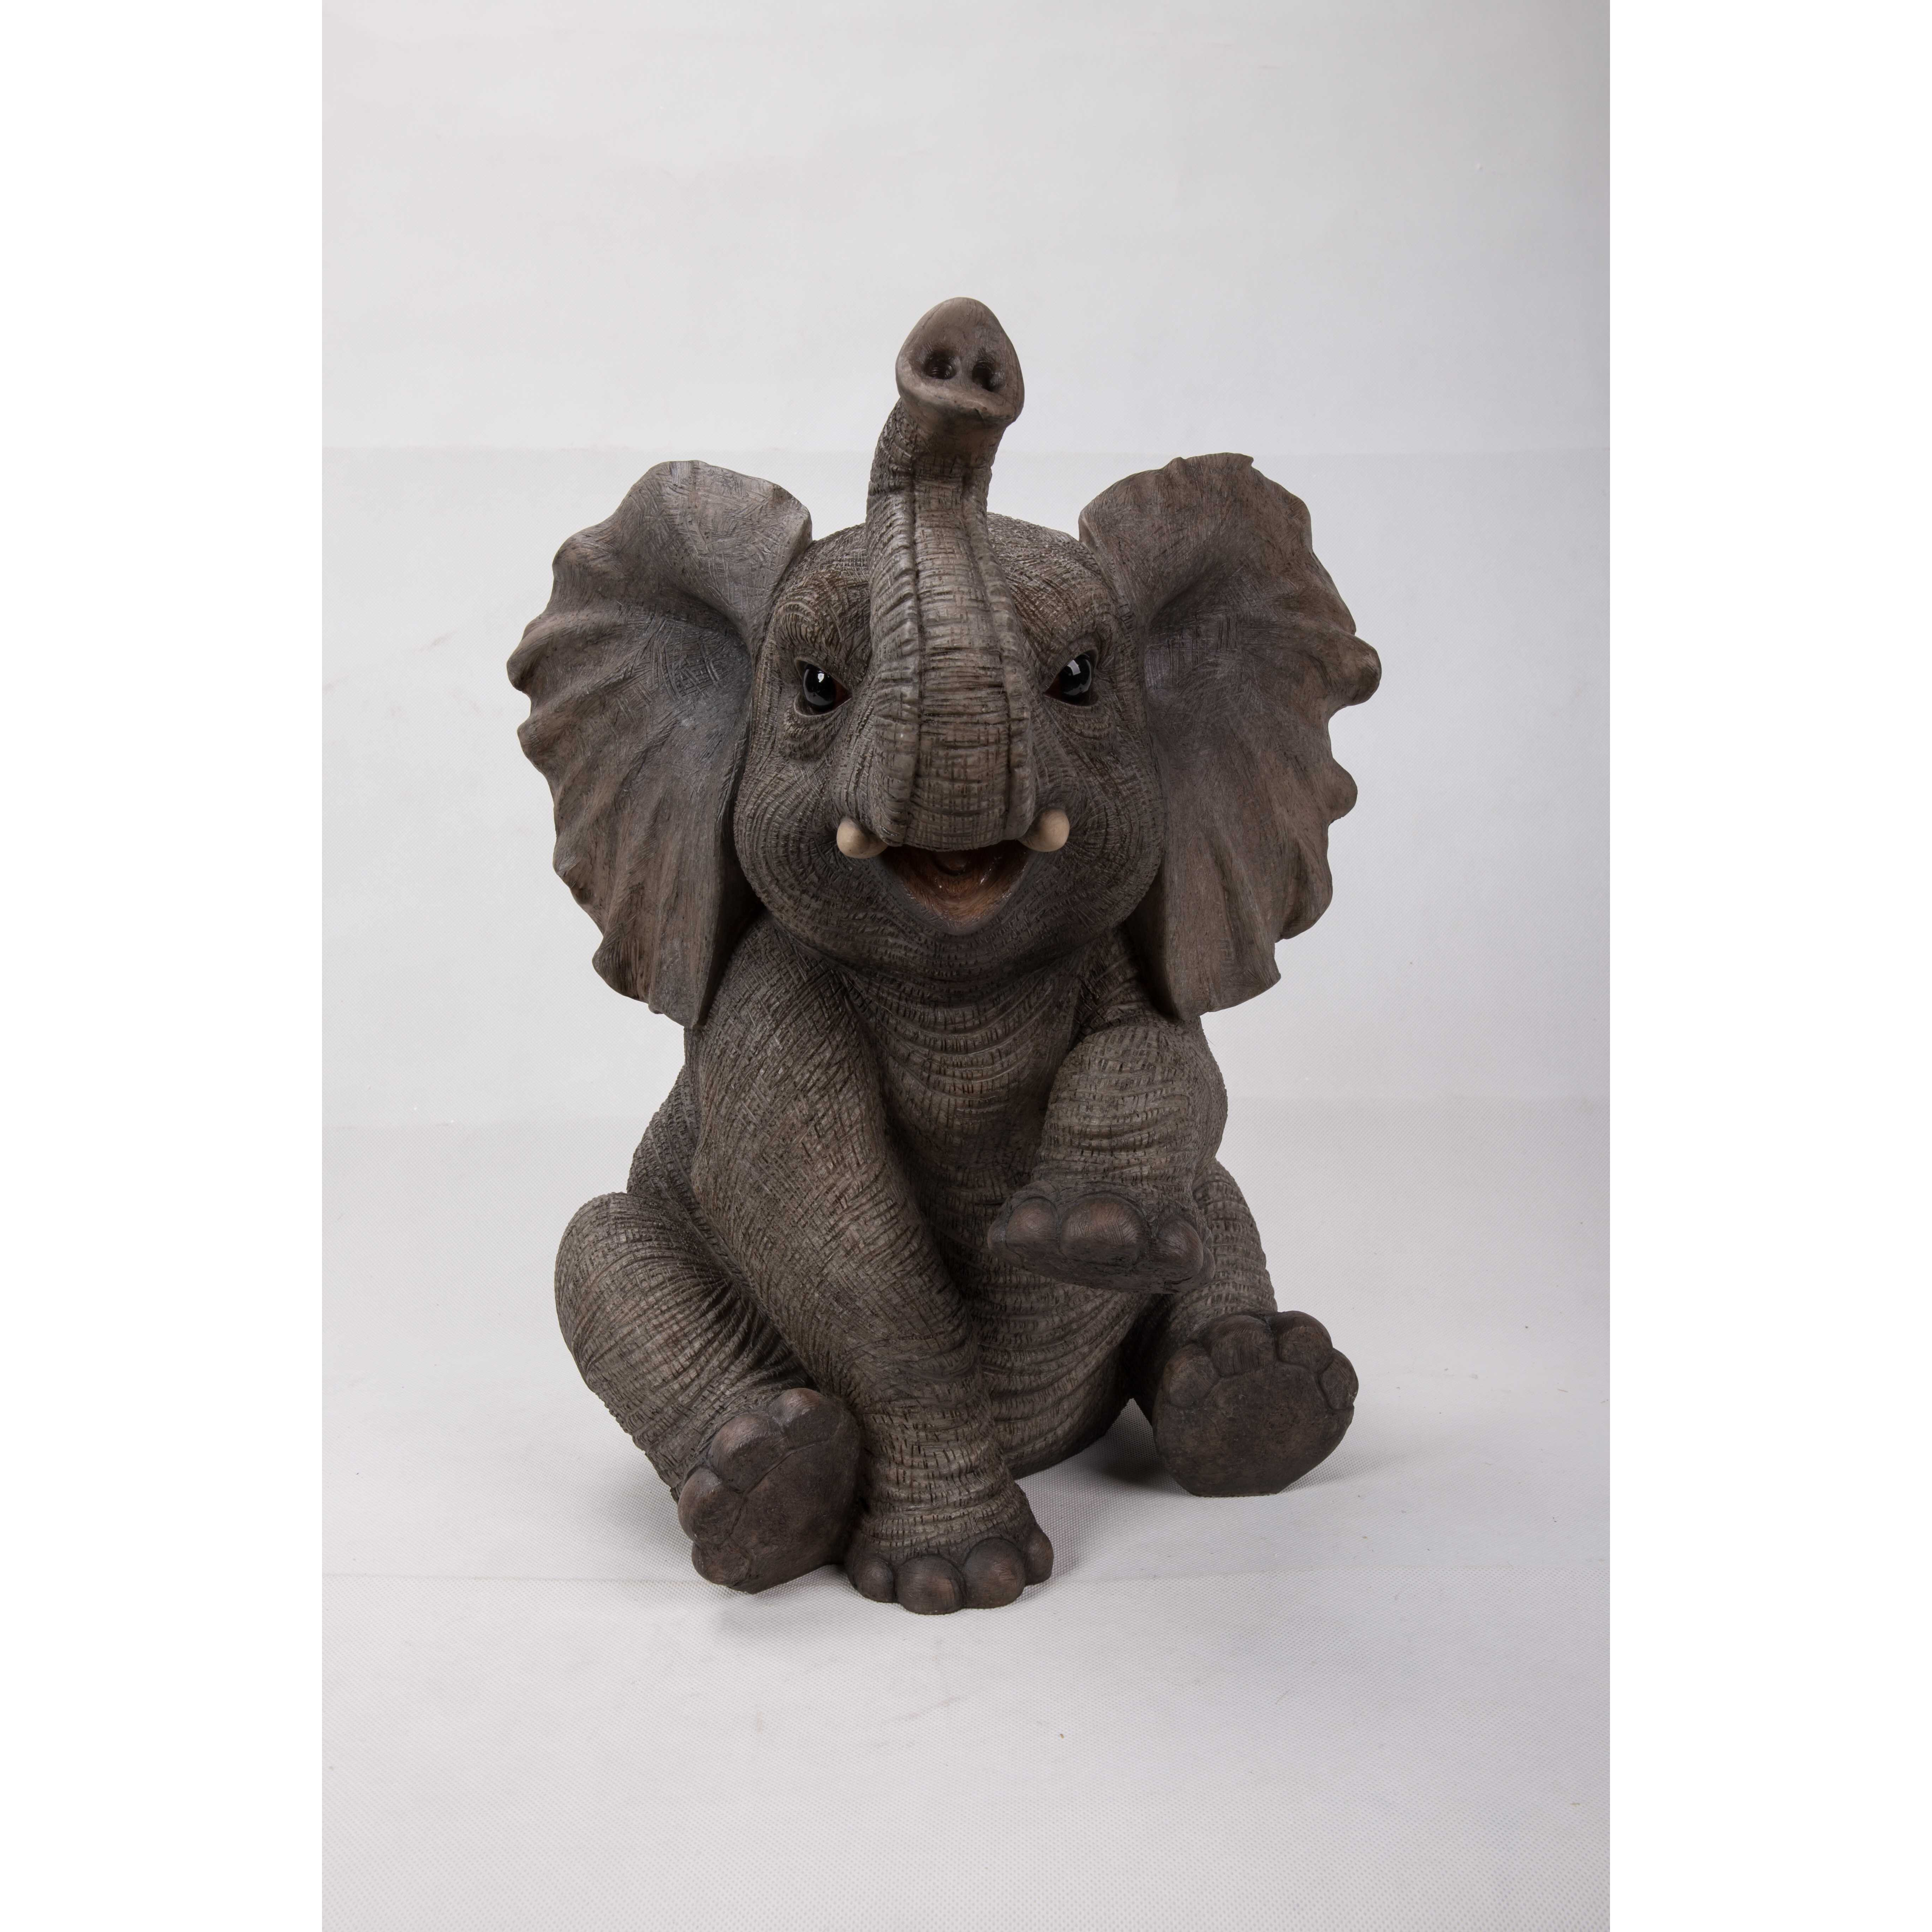 California King Size Bedroom Furniture Sets Hi Line Gift Ltd Sitting Elephant Baby With Trunk Up